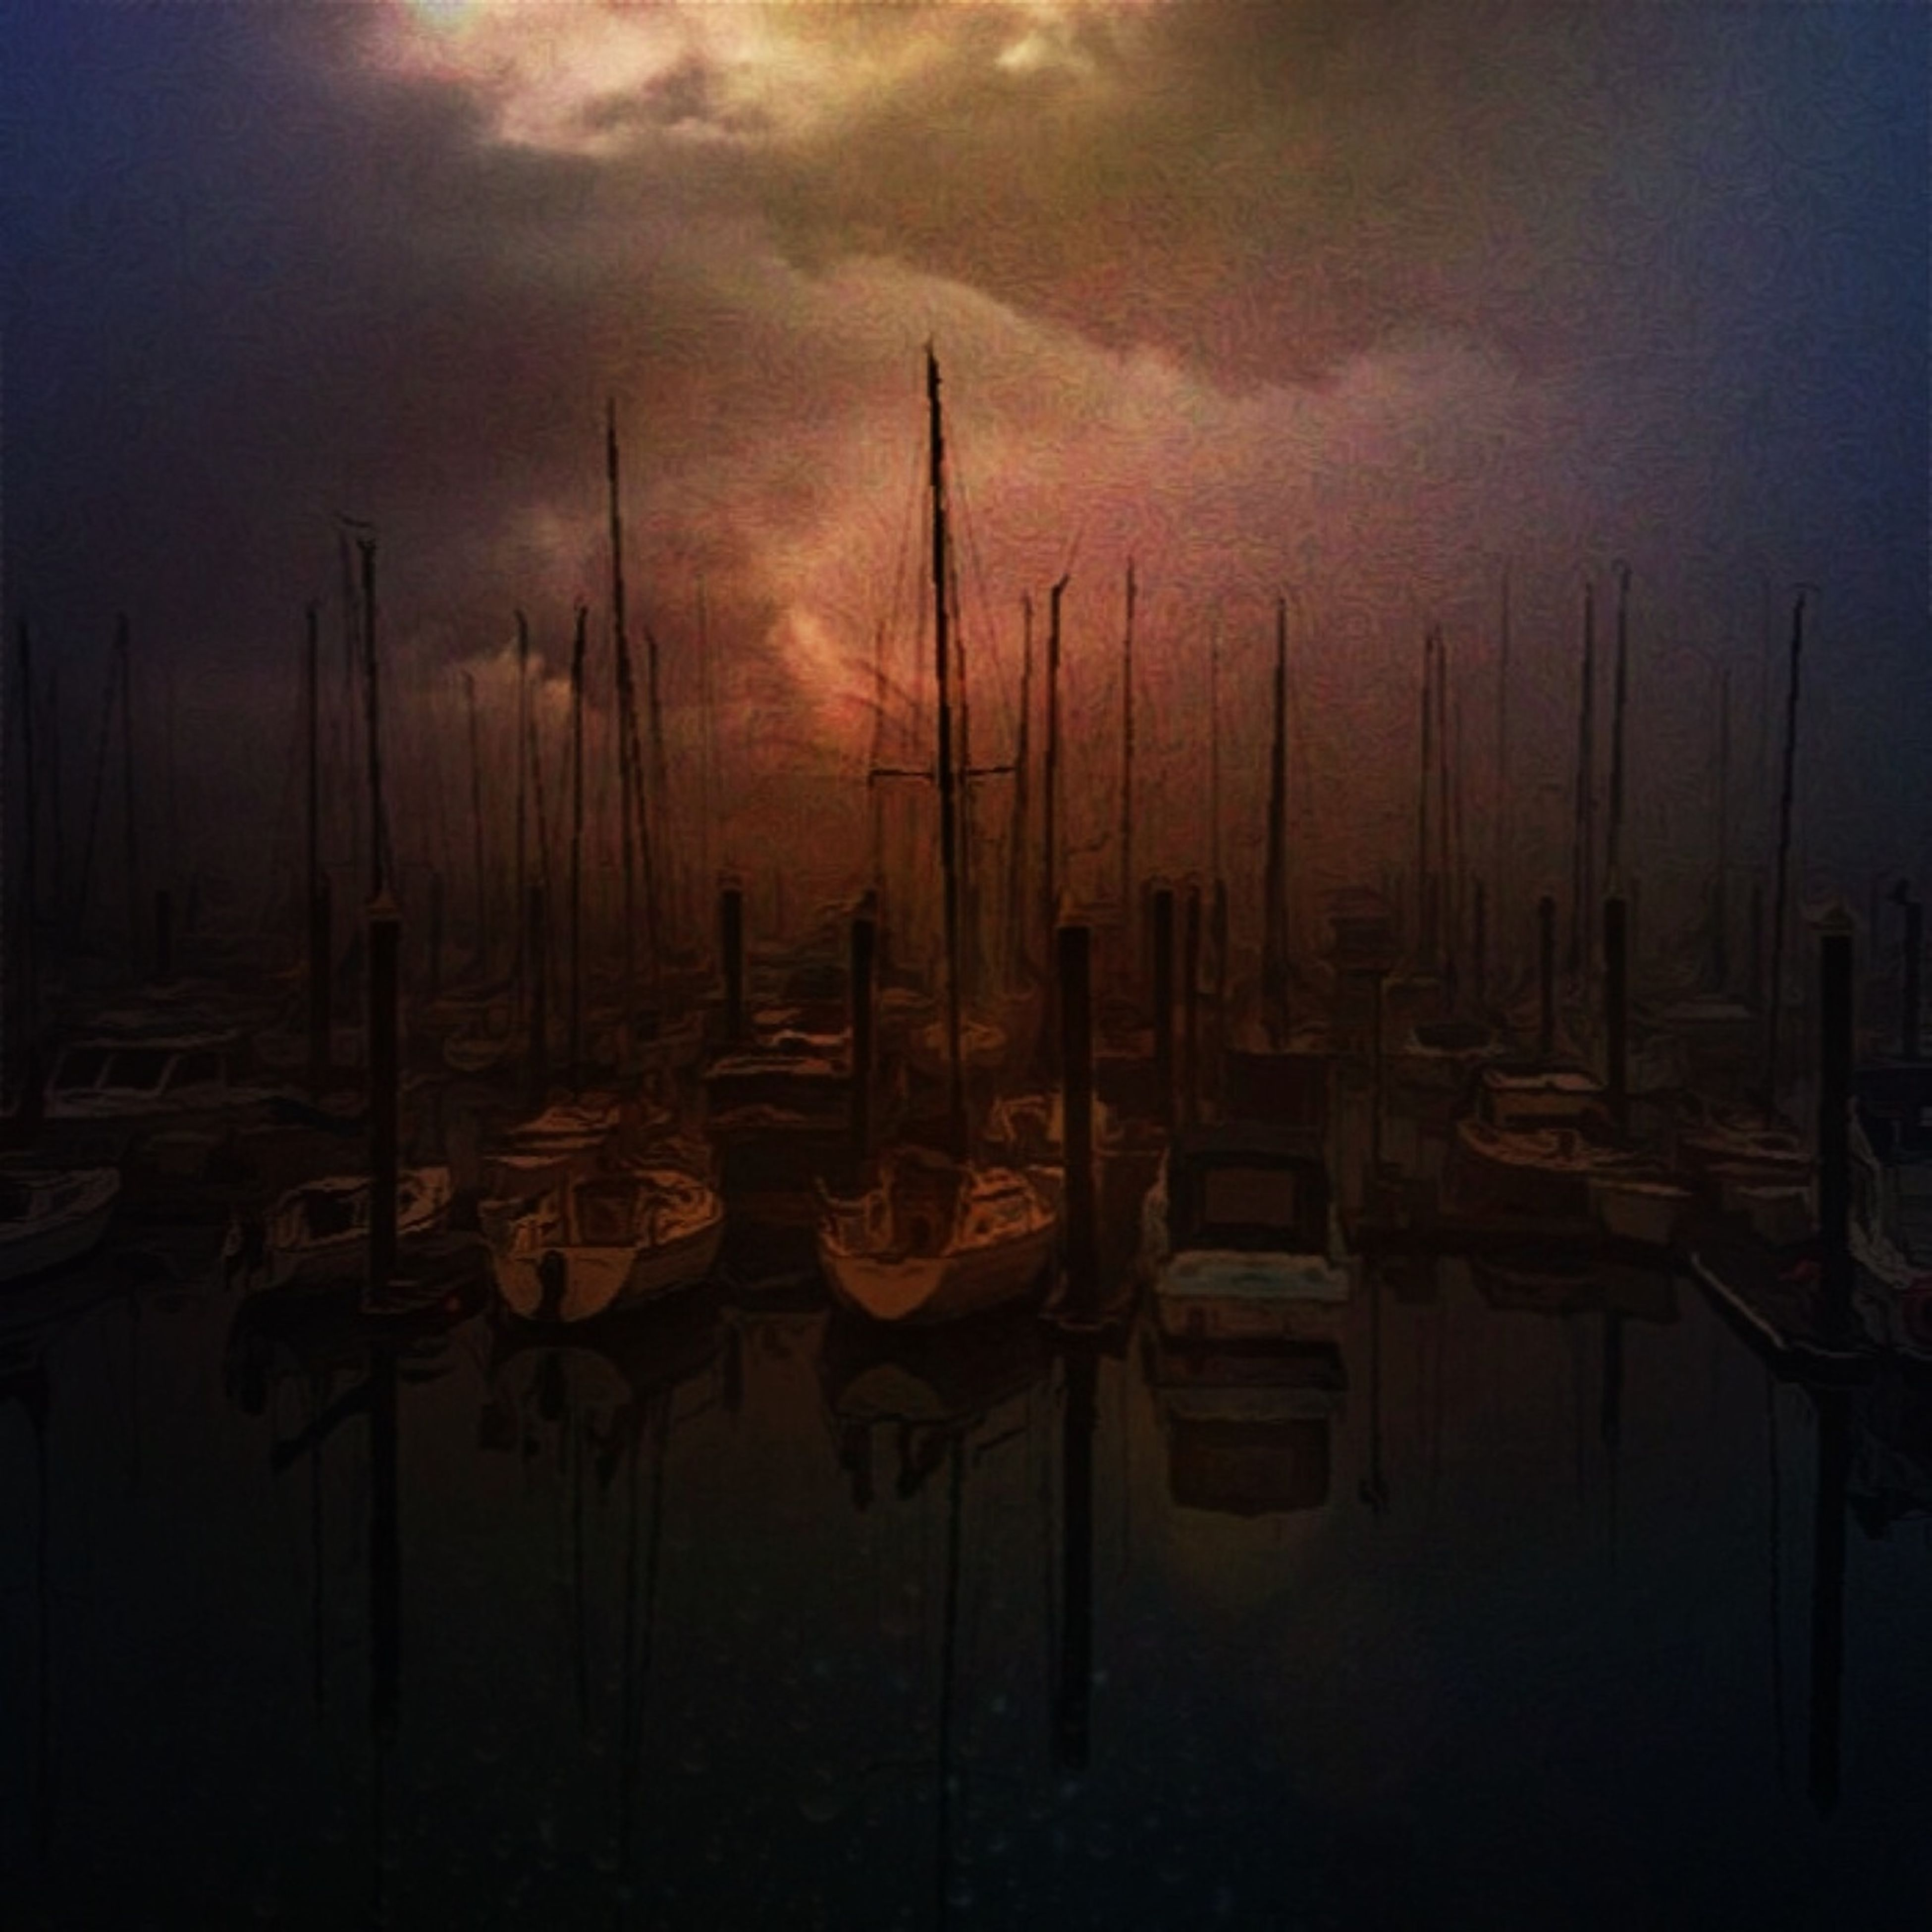 moored, nautical vessel, water, boat, transportation, sky, sea, mode of transport, sunset, harbor, mast, in a row, reflection, sailboat, tranquility, tranquil scene, nature, cloud - sky, group of objects, dusk